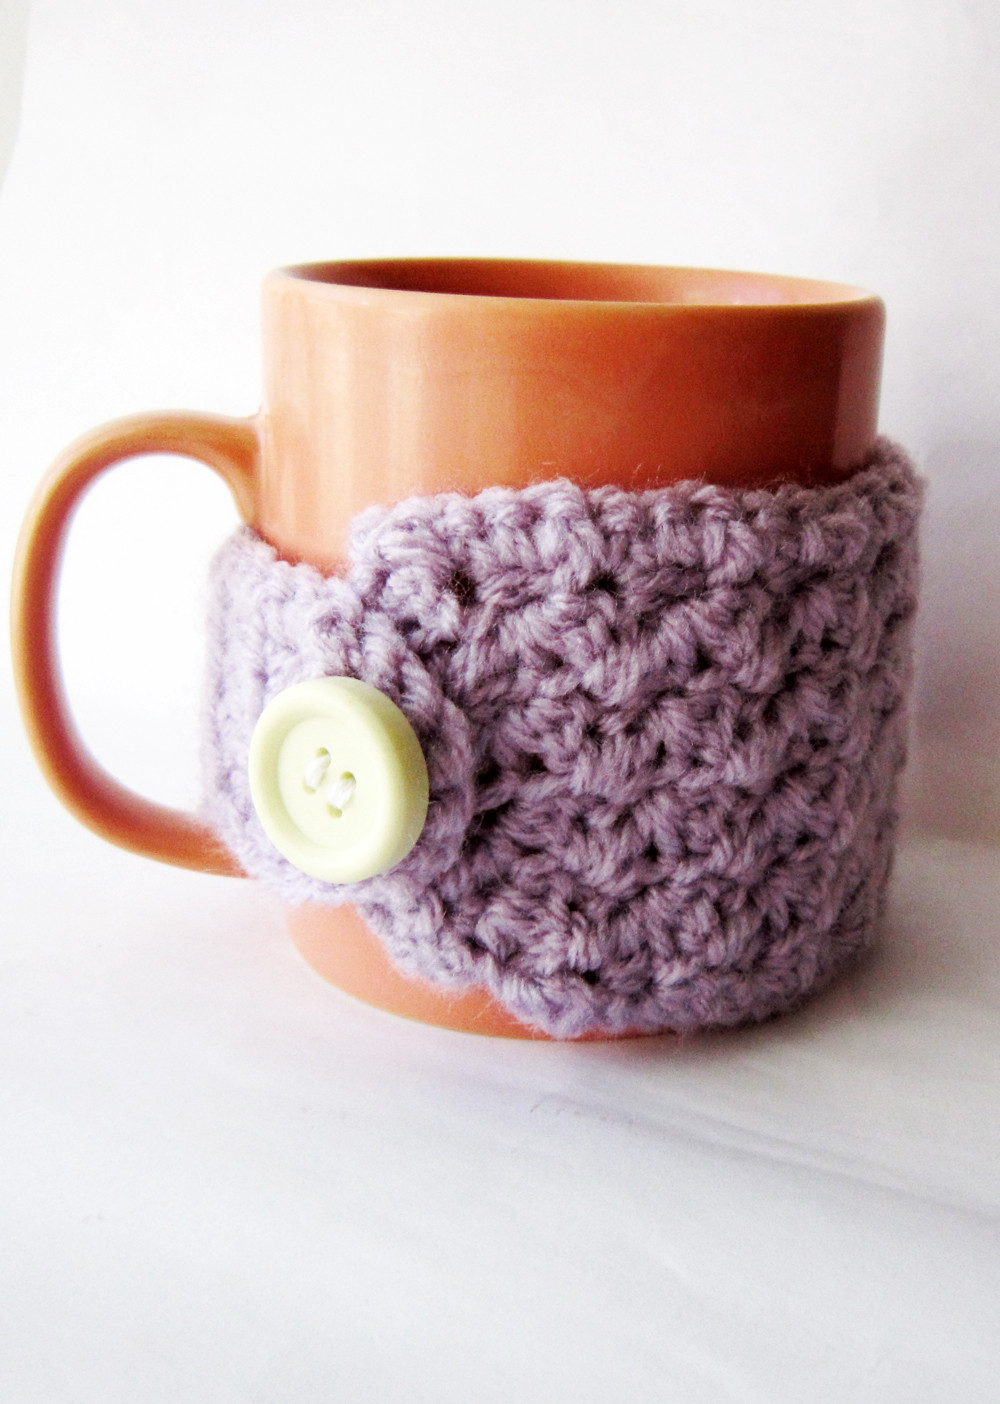 Crochet Coffee Cup Cozy Inspirational Easy Crochet Mug Cozy Free Pattern Akamatra Of Crochet Coffee Cup Cozy Awesome Textured Coffee Mug Cozy Crochet Pattern